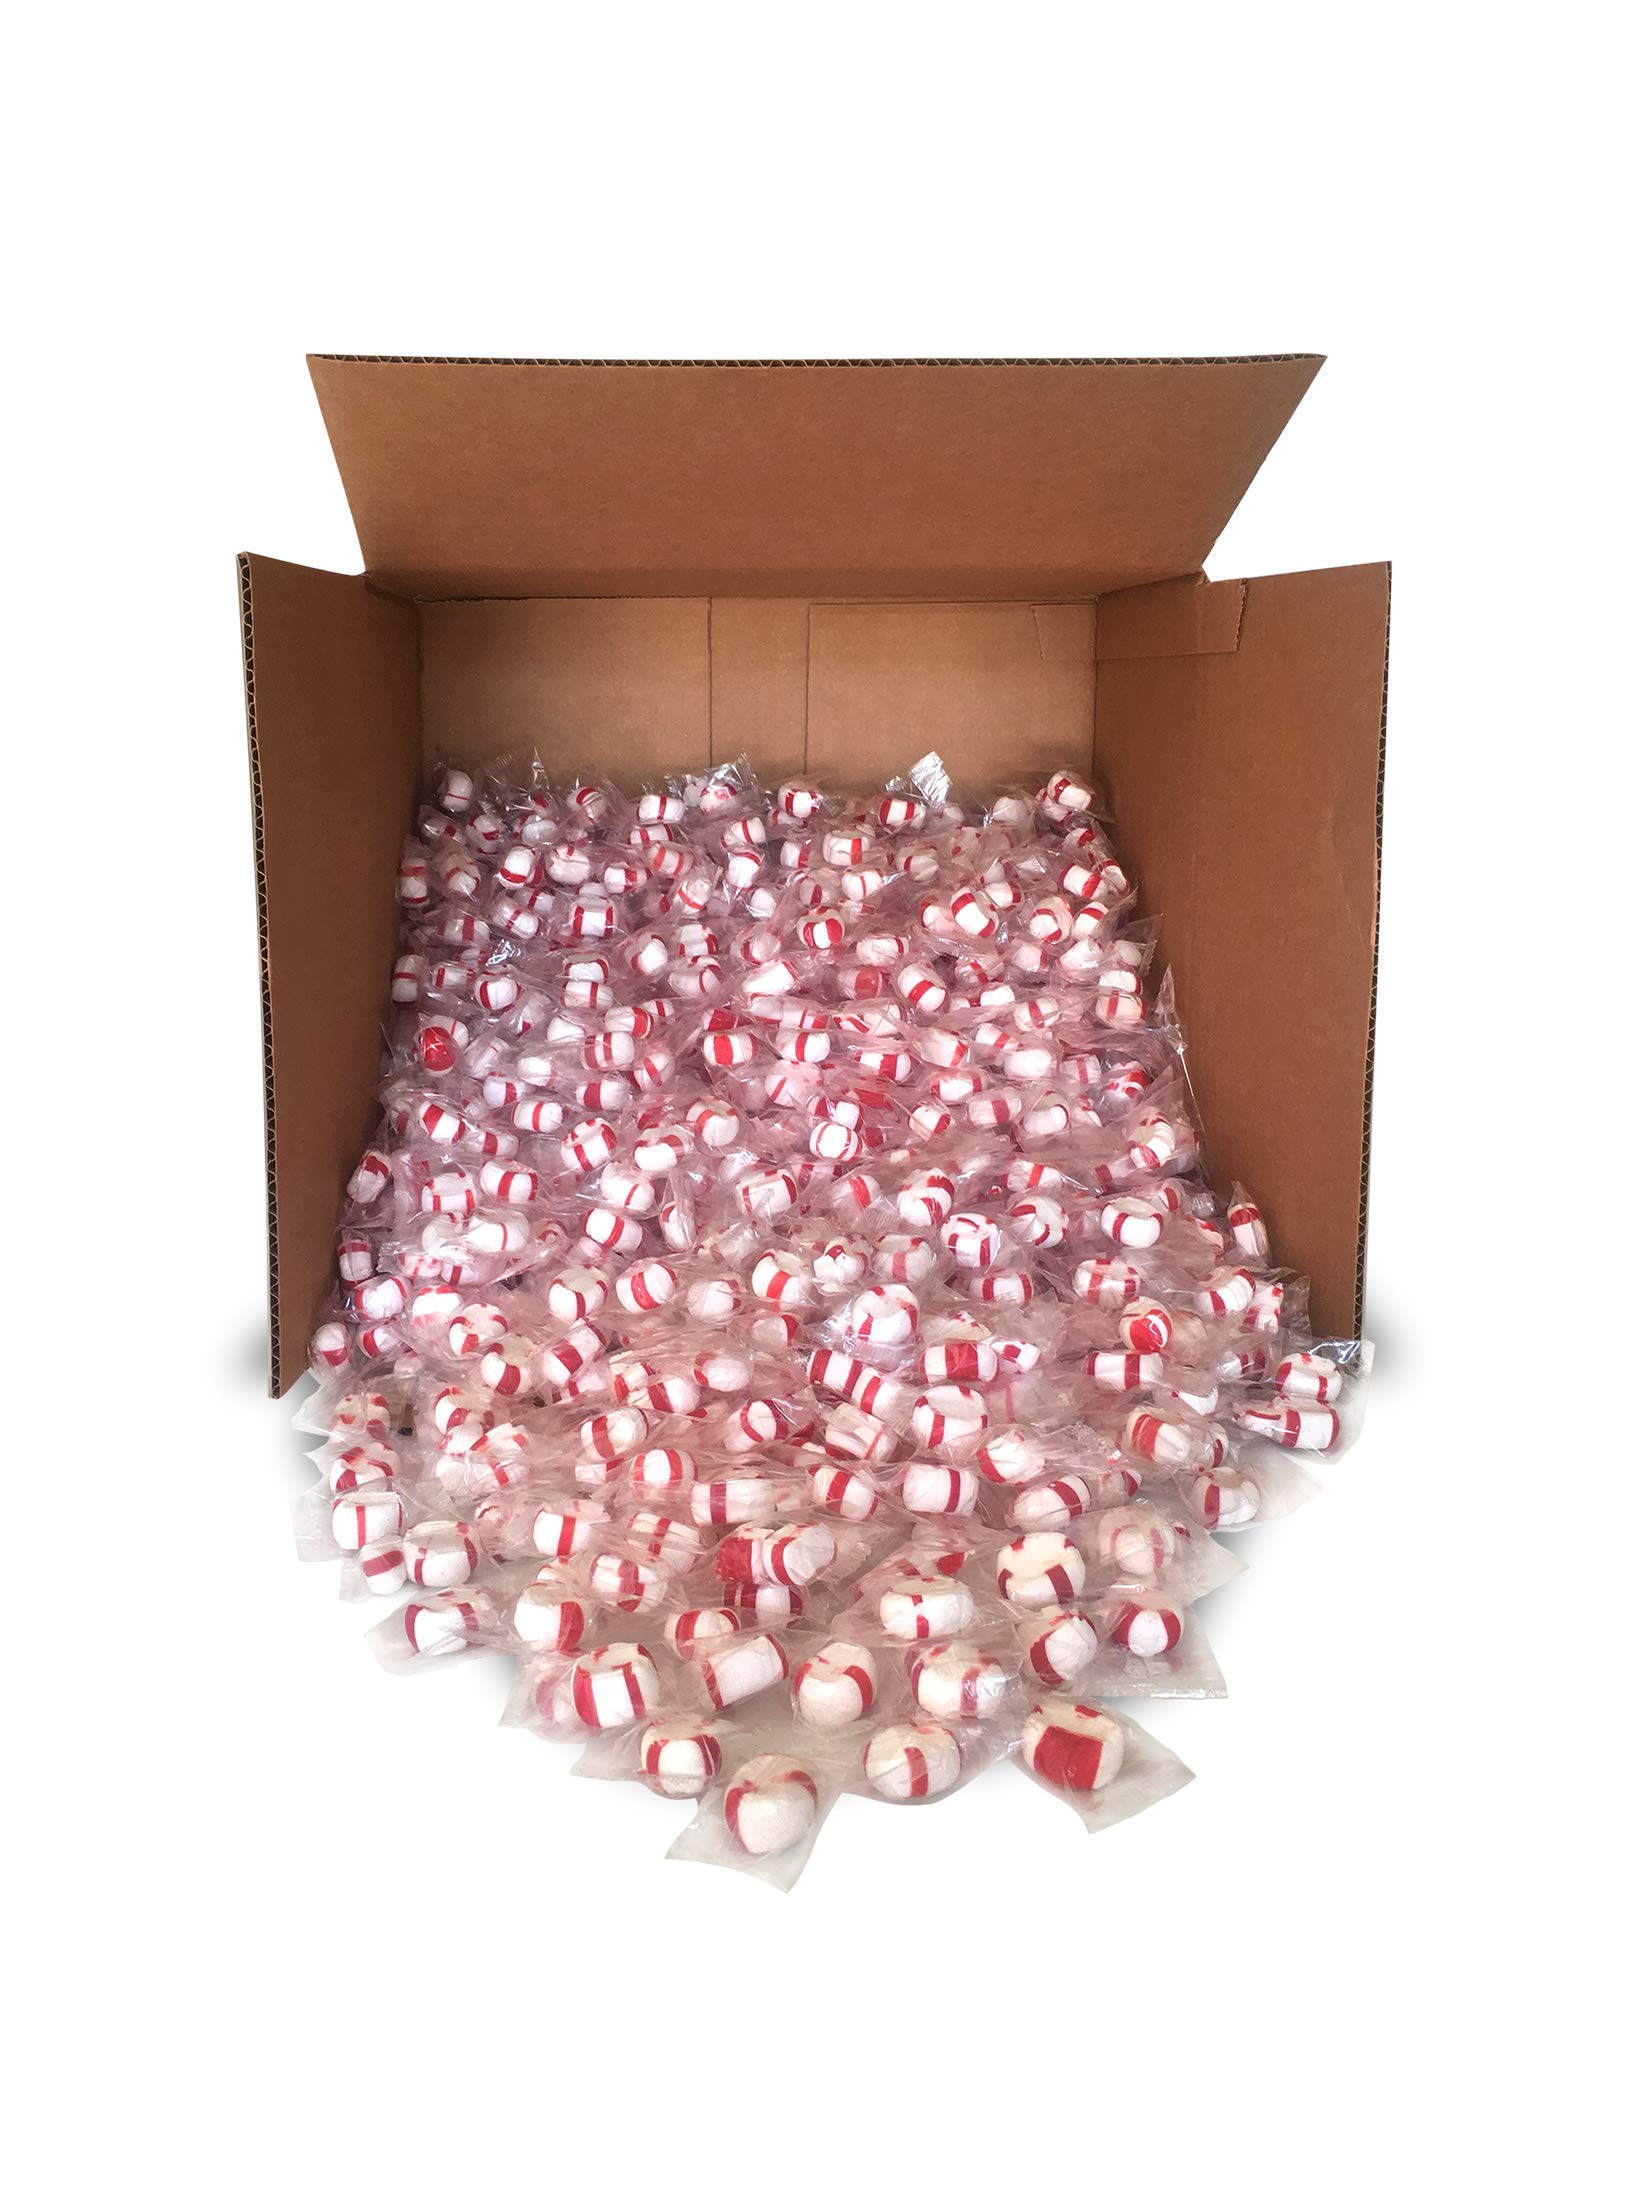 Red Bird Soft Peppermint Puff Candy 20 lb Bulk, individually wrapped, made with 100% cane sugar and natural peppermint oil by RED BIRD SOUTHERN REFRESH - MINTS